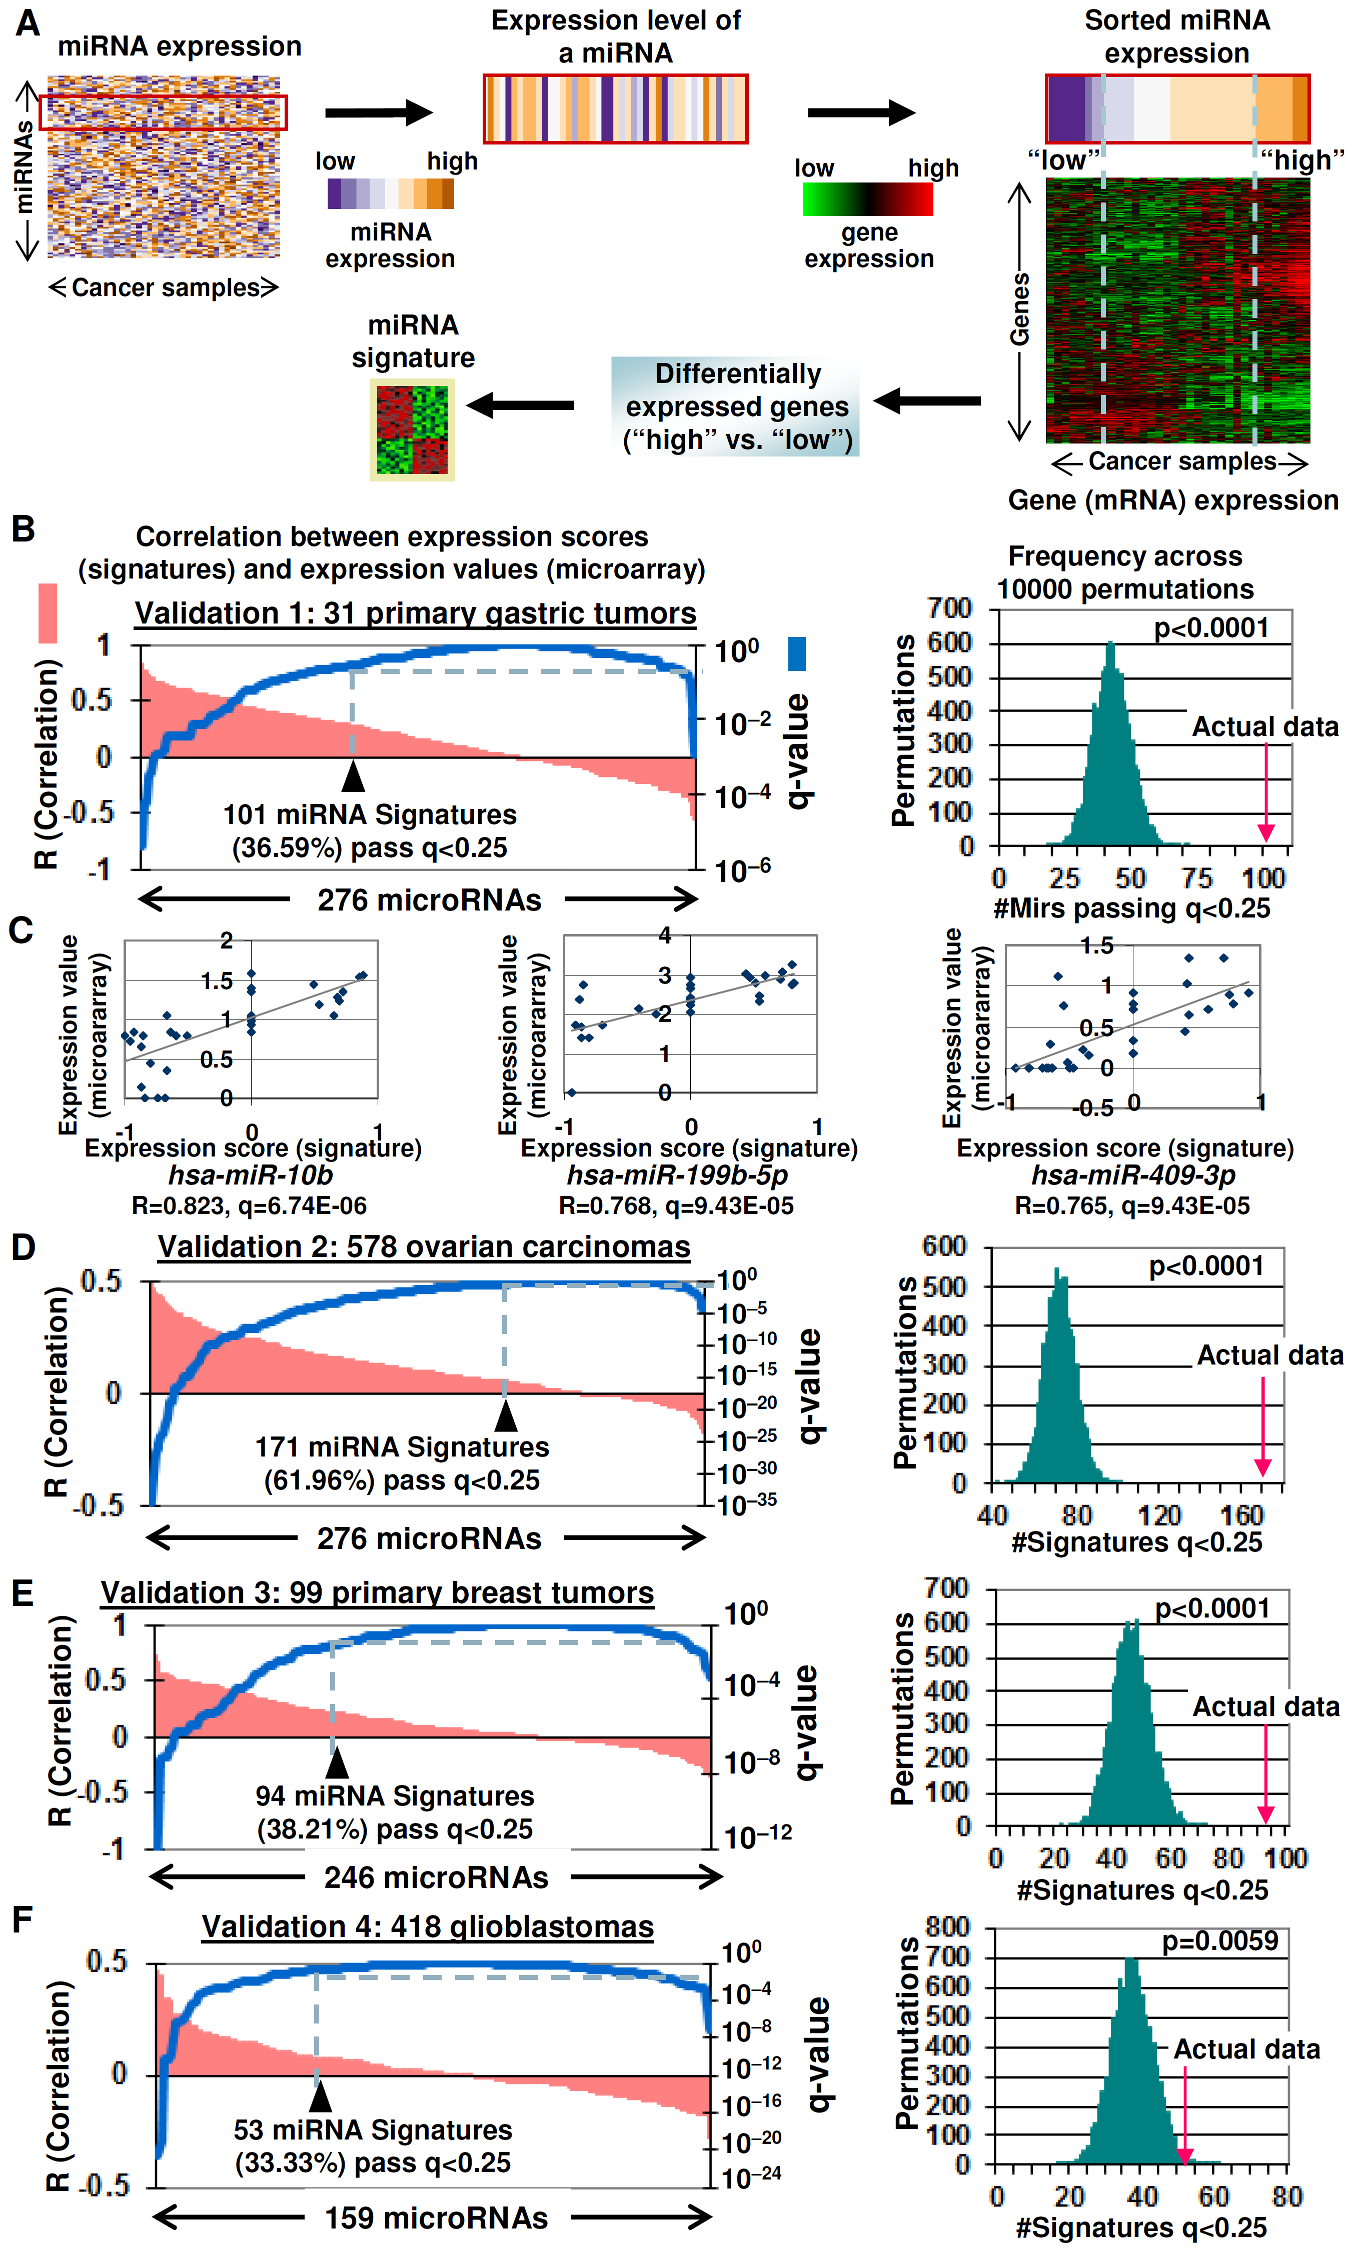 Gene expression signatures as surrogates of miRNA expression.